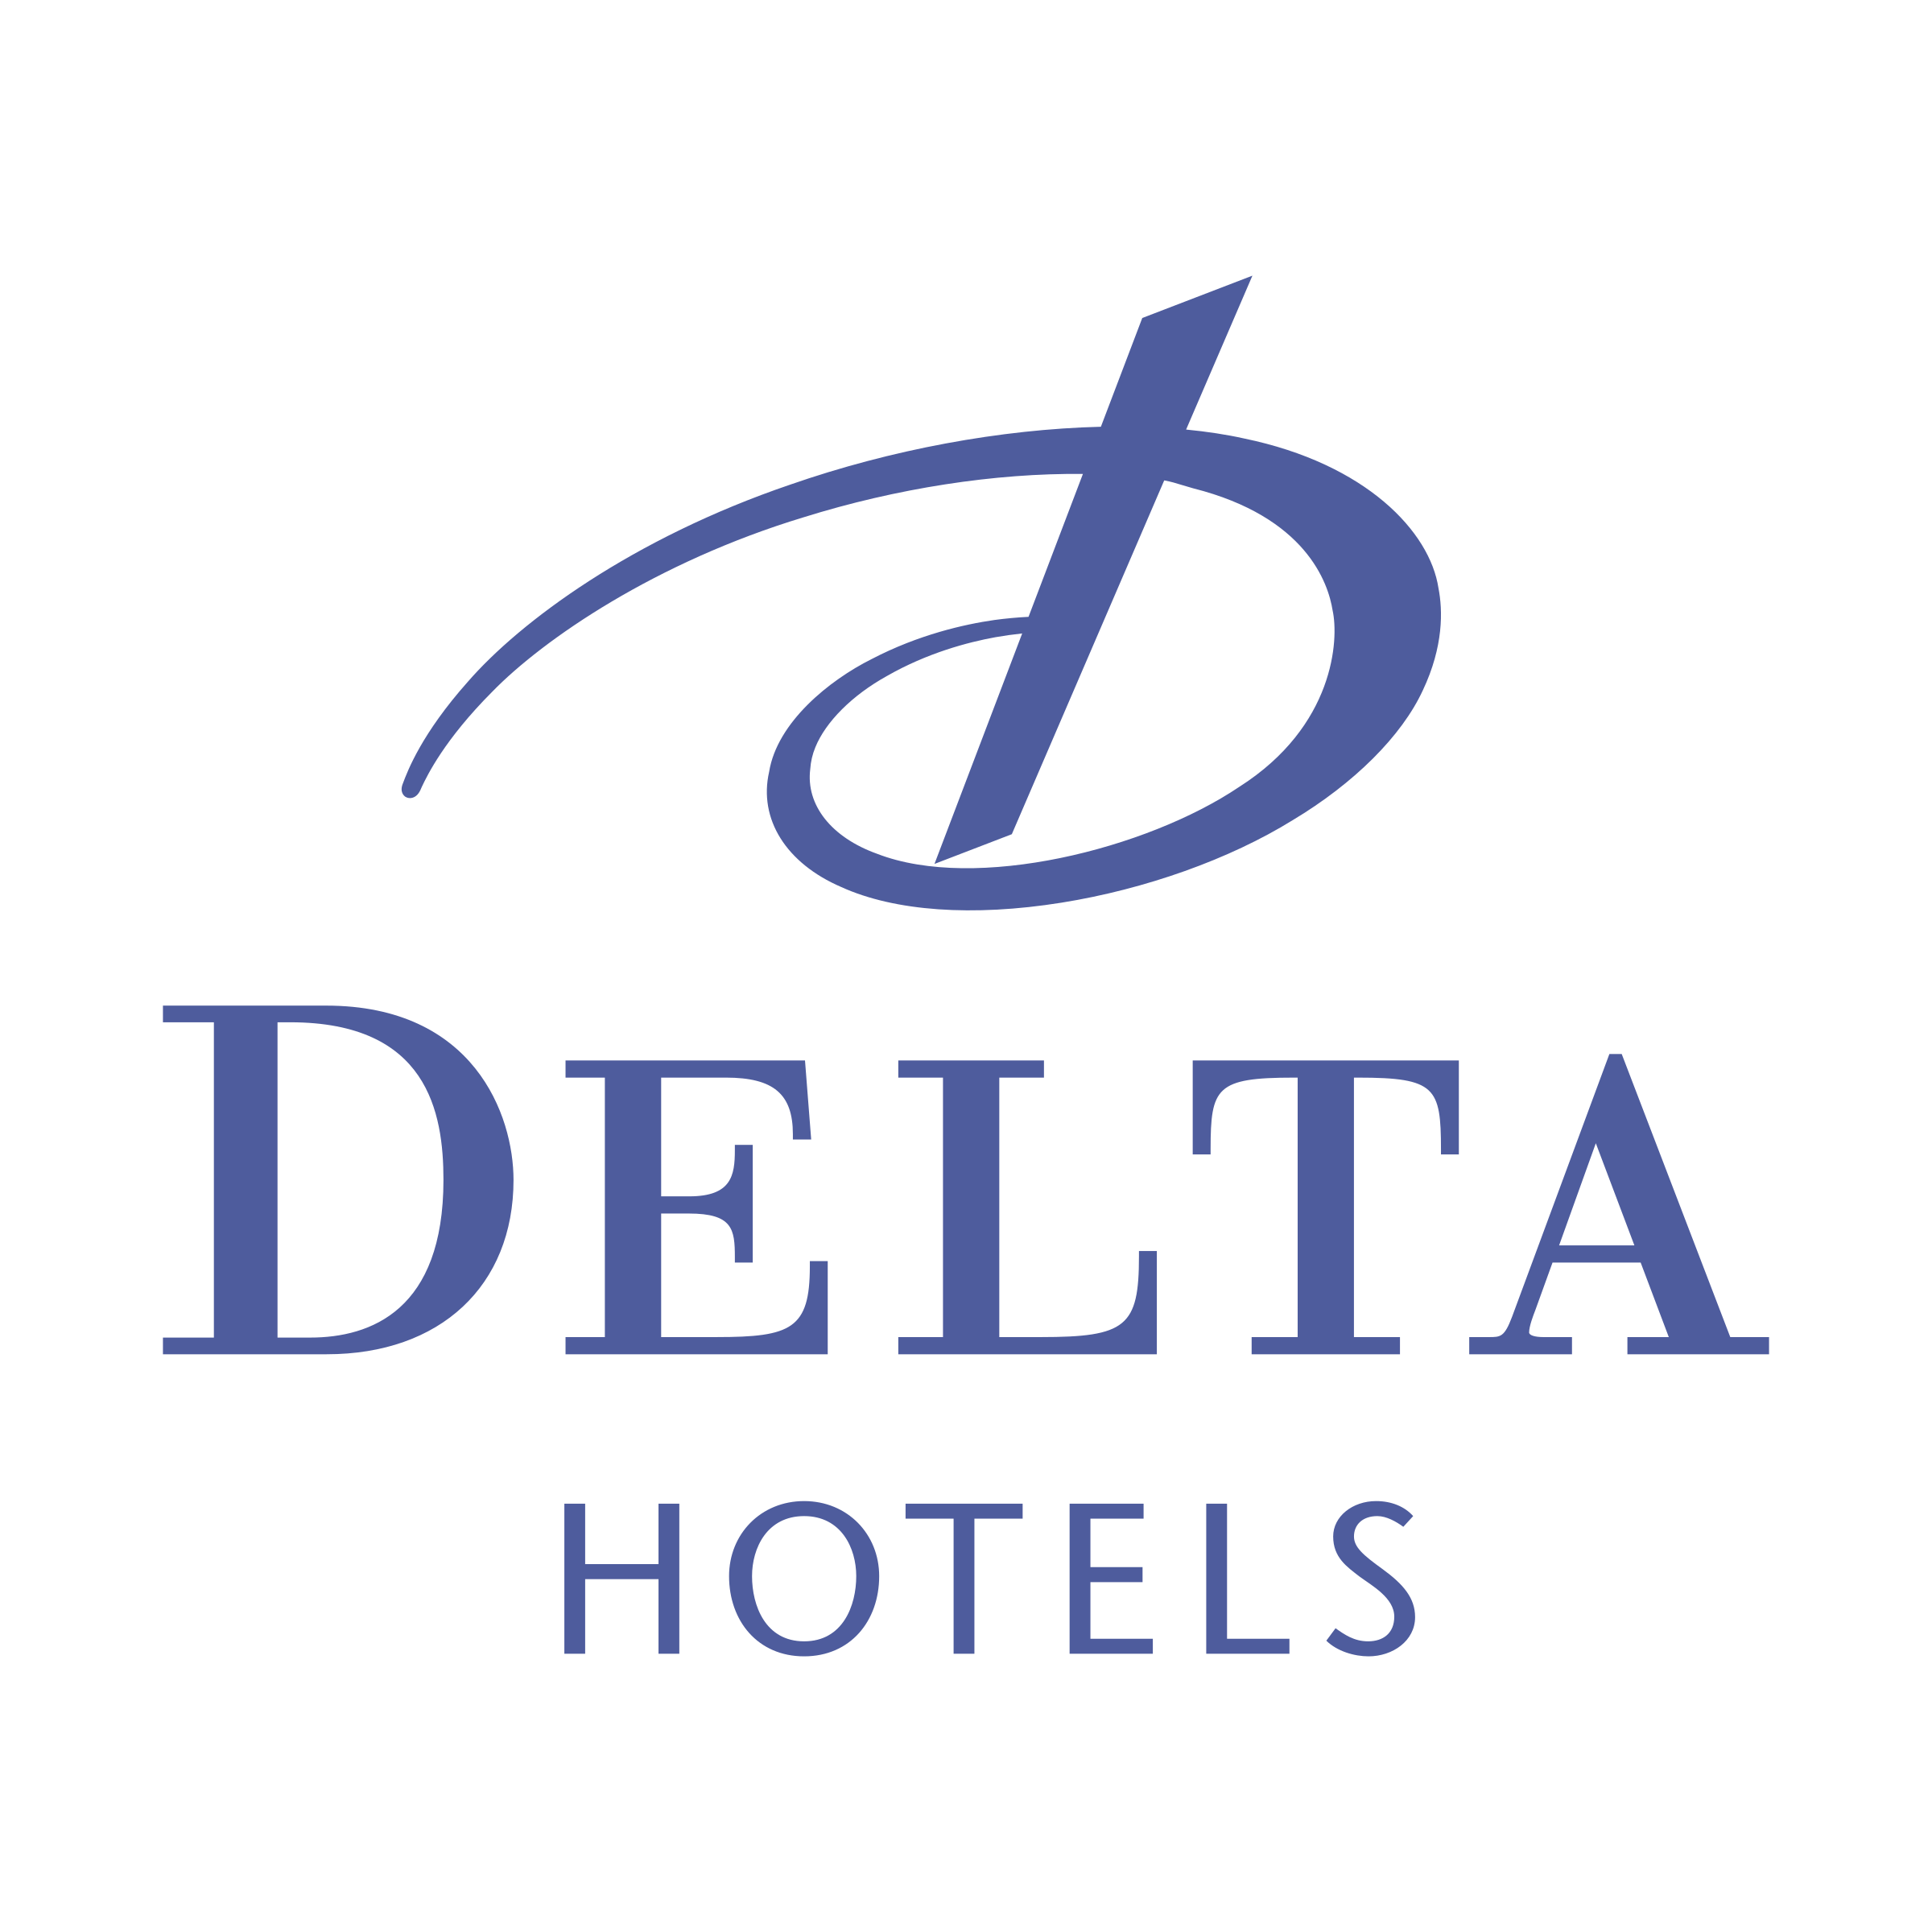 Delta vector. Hotels logo png transparent